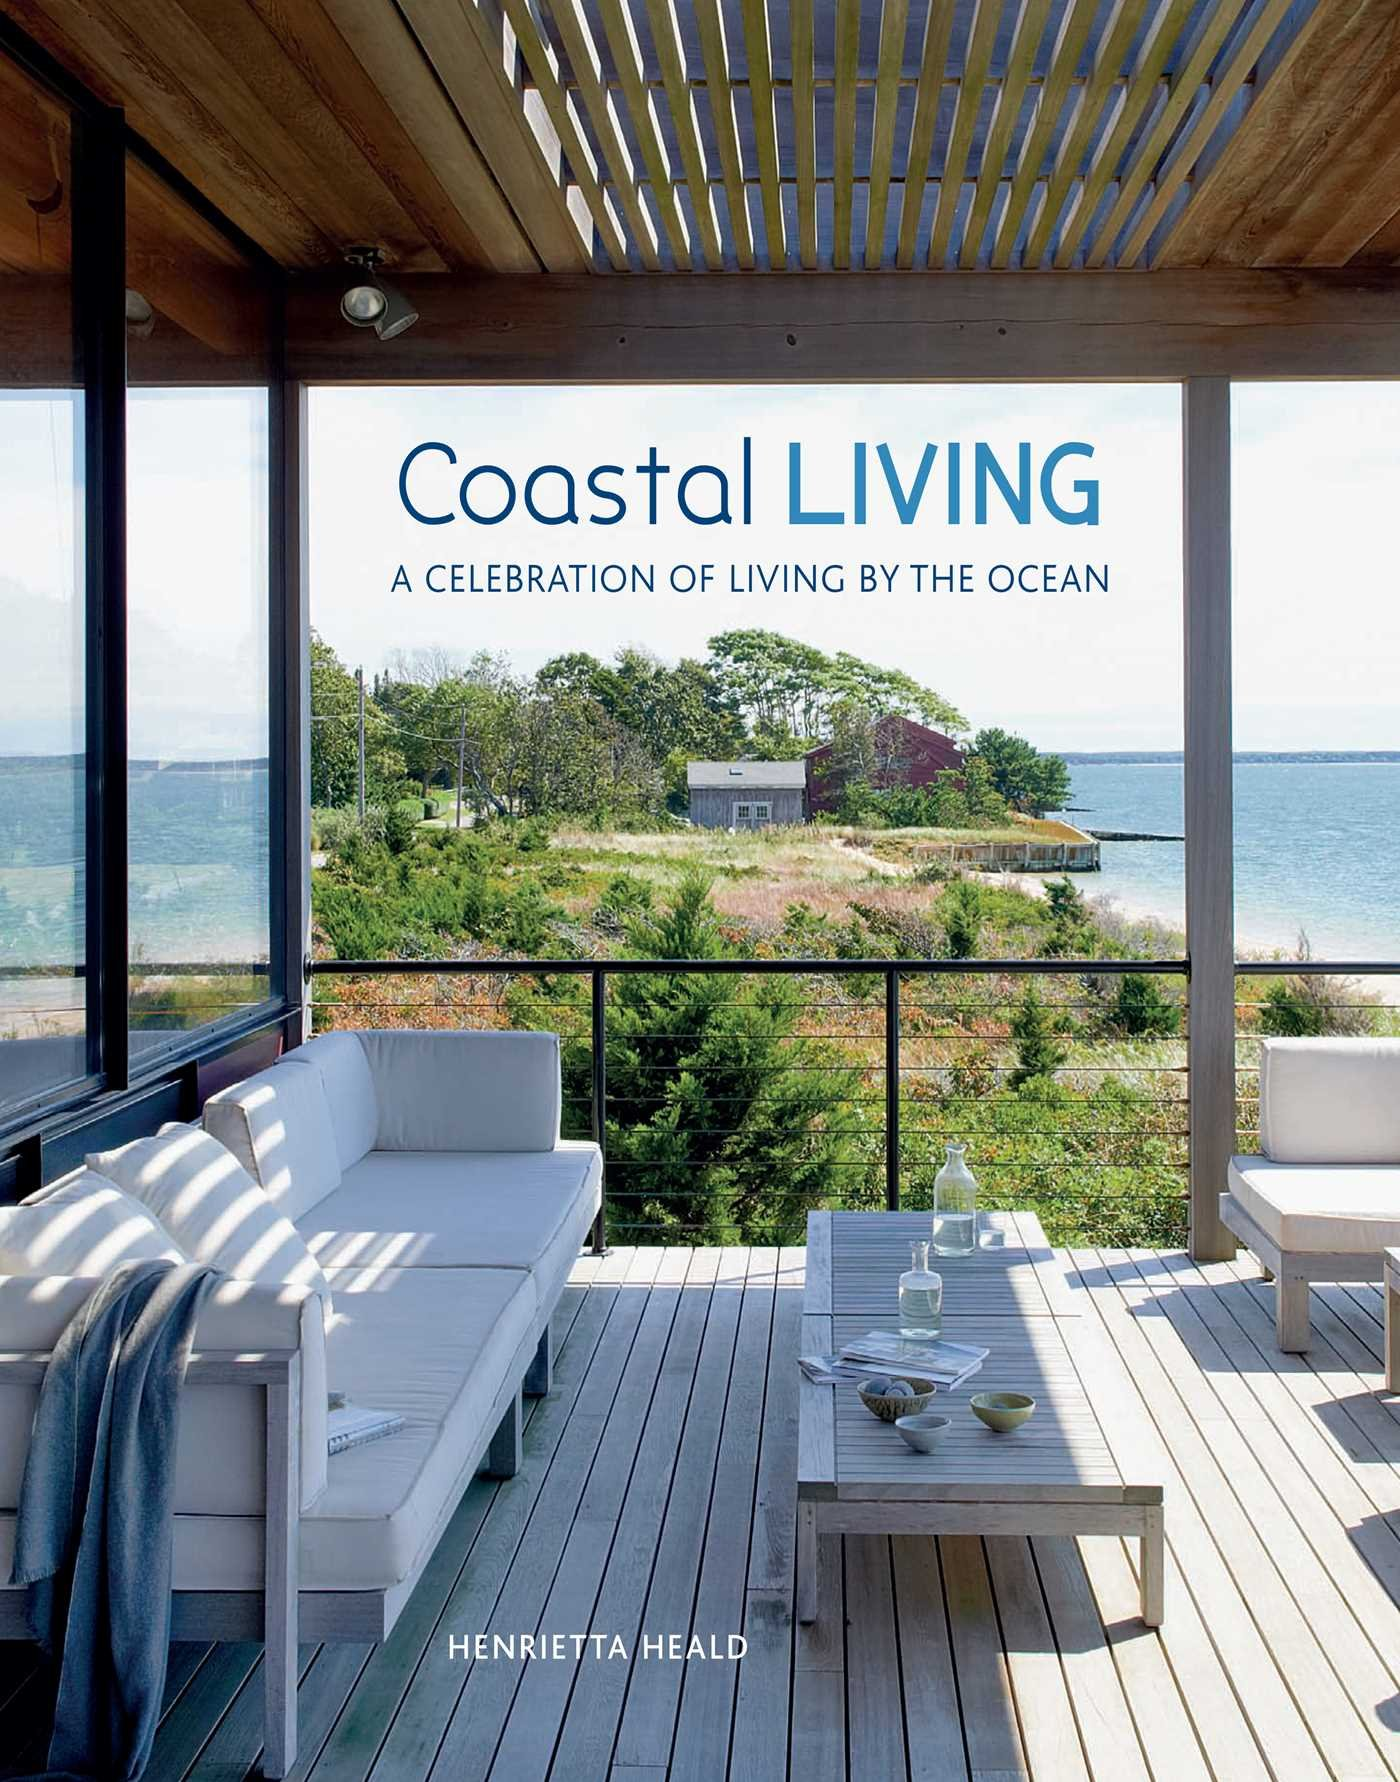 Coastal Living: A Celebration Of Living By The Ocean: Henrietta Heald:  9781849757331: Amazon.com: Books